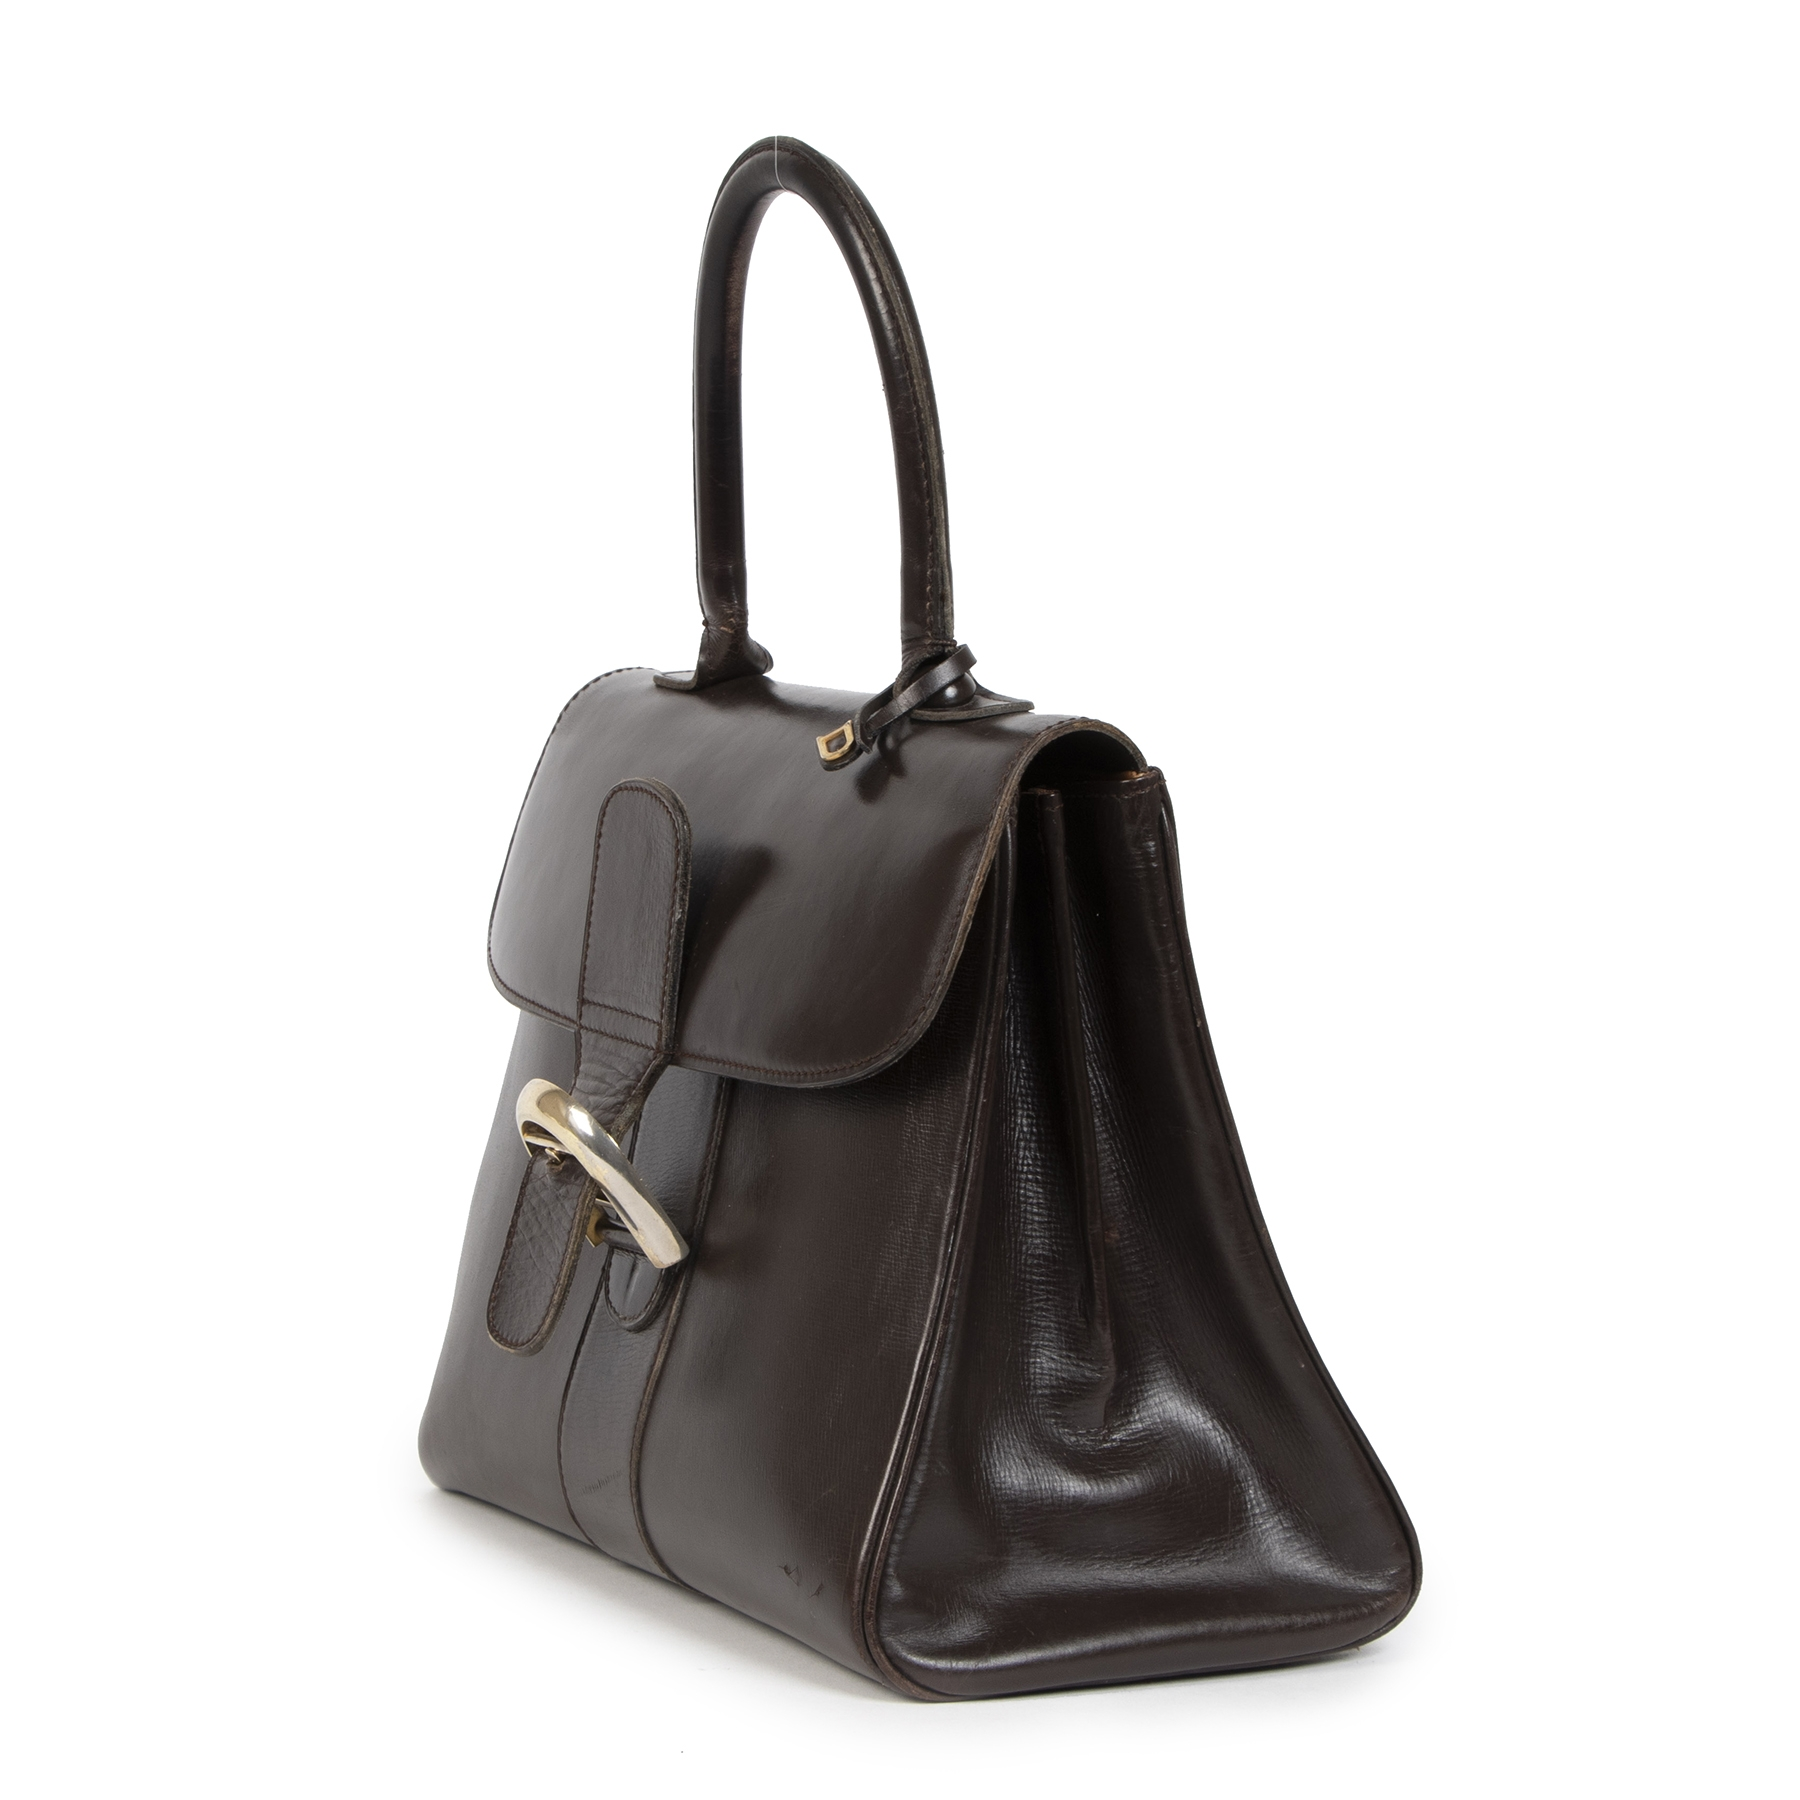 Buy authentic secondhand Delvaux Dark Brown Brillant PM Bag at the right price at LabelLOV vintage webshop. Safe and secure online shopping. Koop authentieke tweedehands Delvaux Dark Brown Brillant PM Bag met de juiste prijs bij LabelLOV